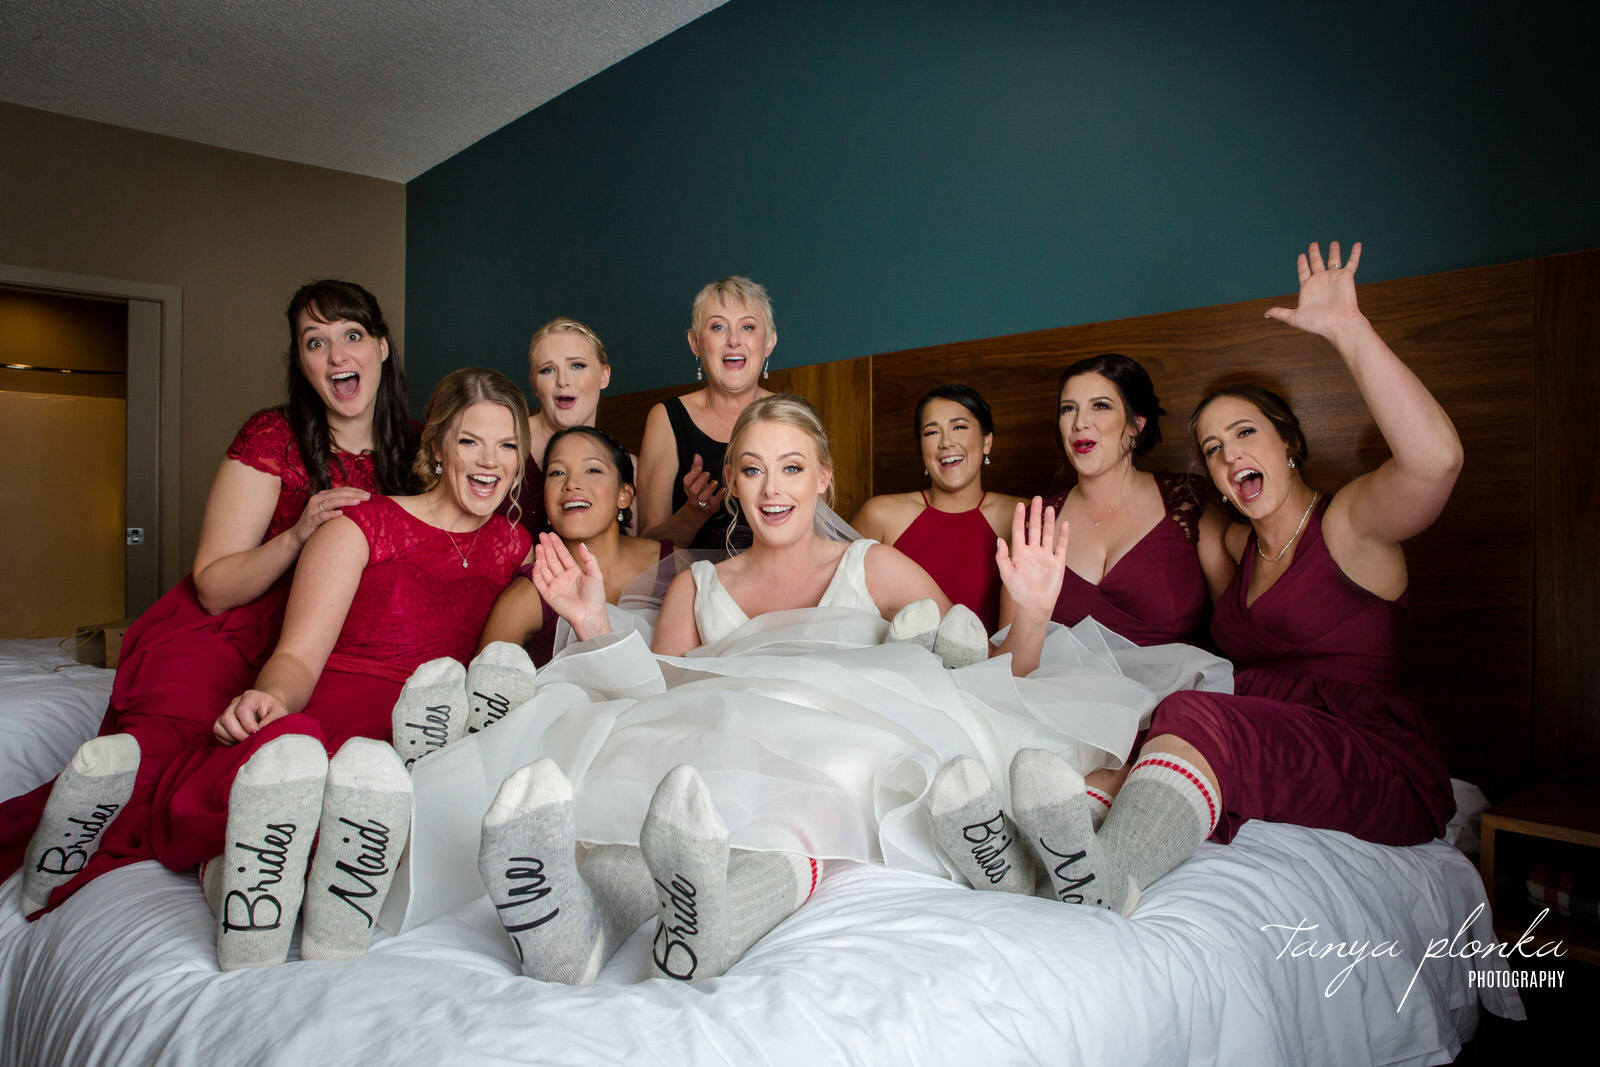 bride and bridesmaids with custom matching socks sit together on bed cheering